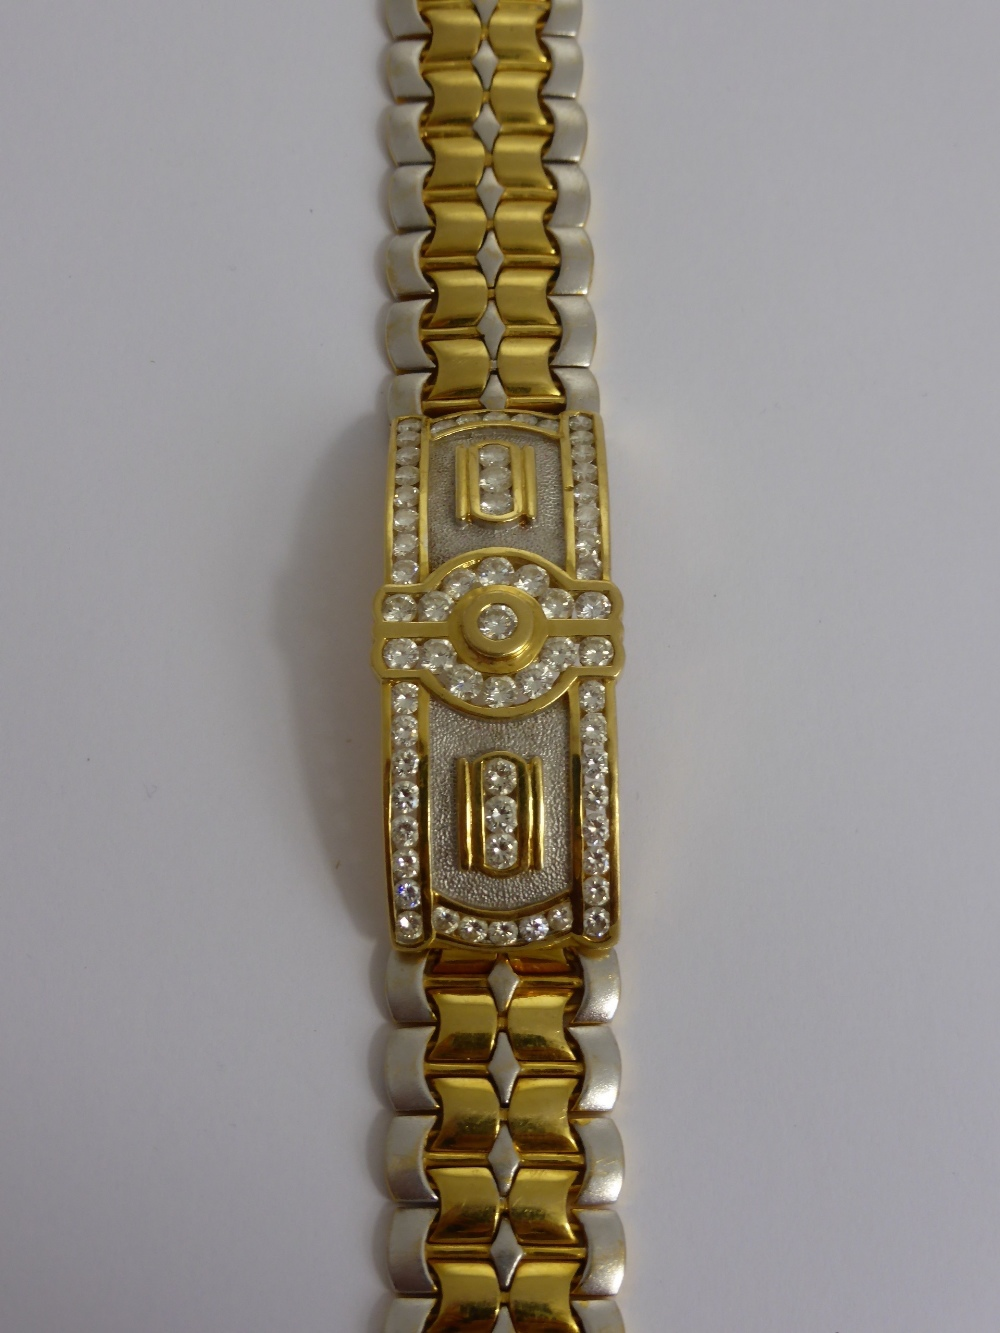 A Gentlemans 18ct Gold & Diamond Bracelet £1400